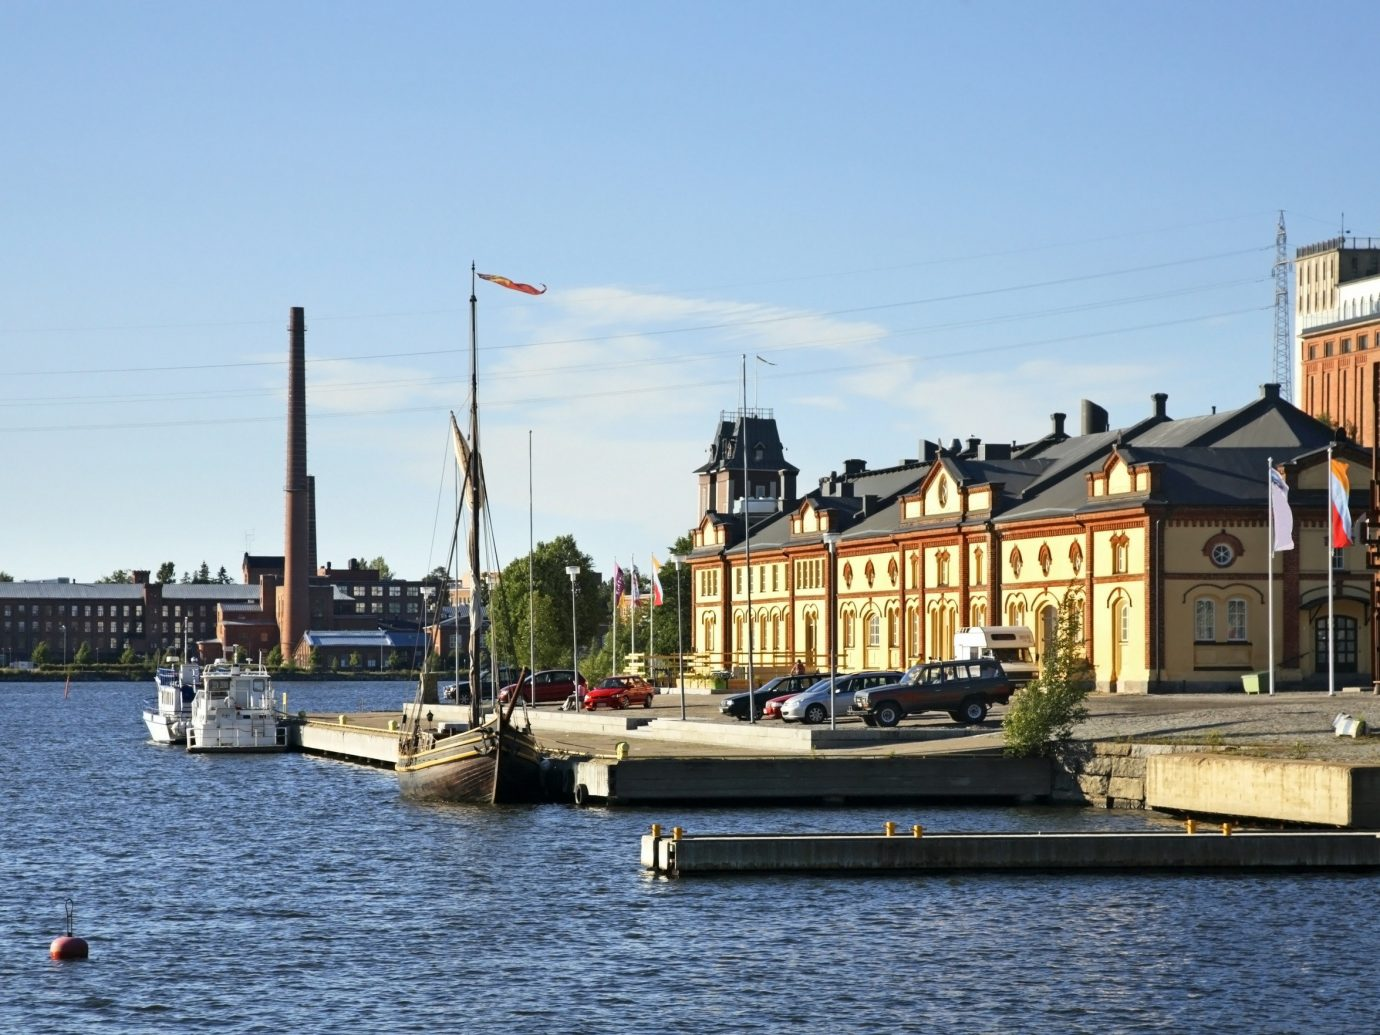 Finland Trip Ideas sky water outdoor waterway body of water Boat Harbor water transportation Town Canal channel vehicle River City boating watercraft marina tree port ship house day